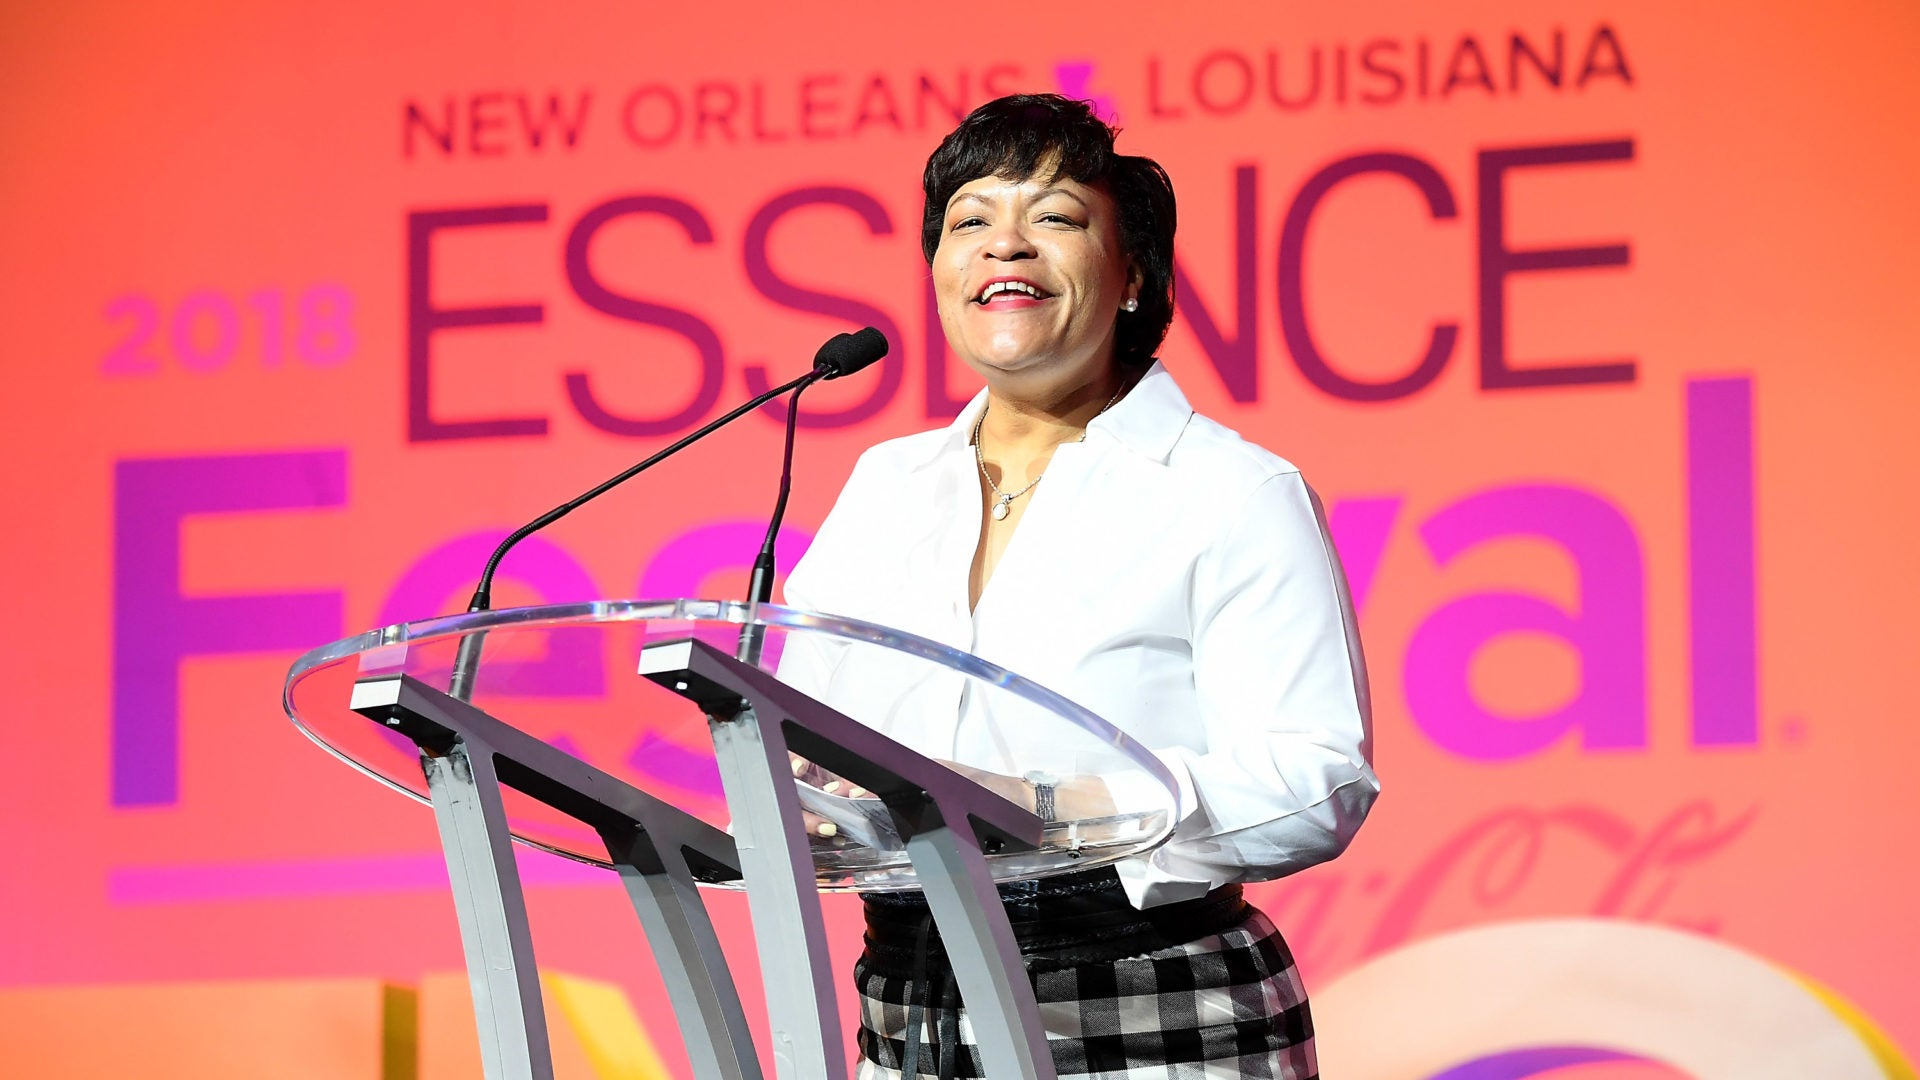 About the Business: Mayor Cantrell's Trip to Ghana Draws Unfair Criticism